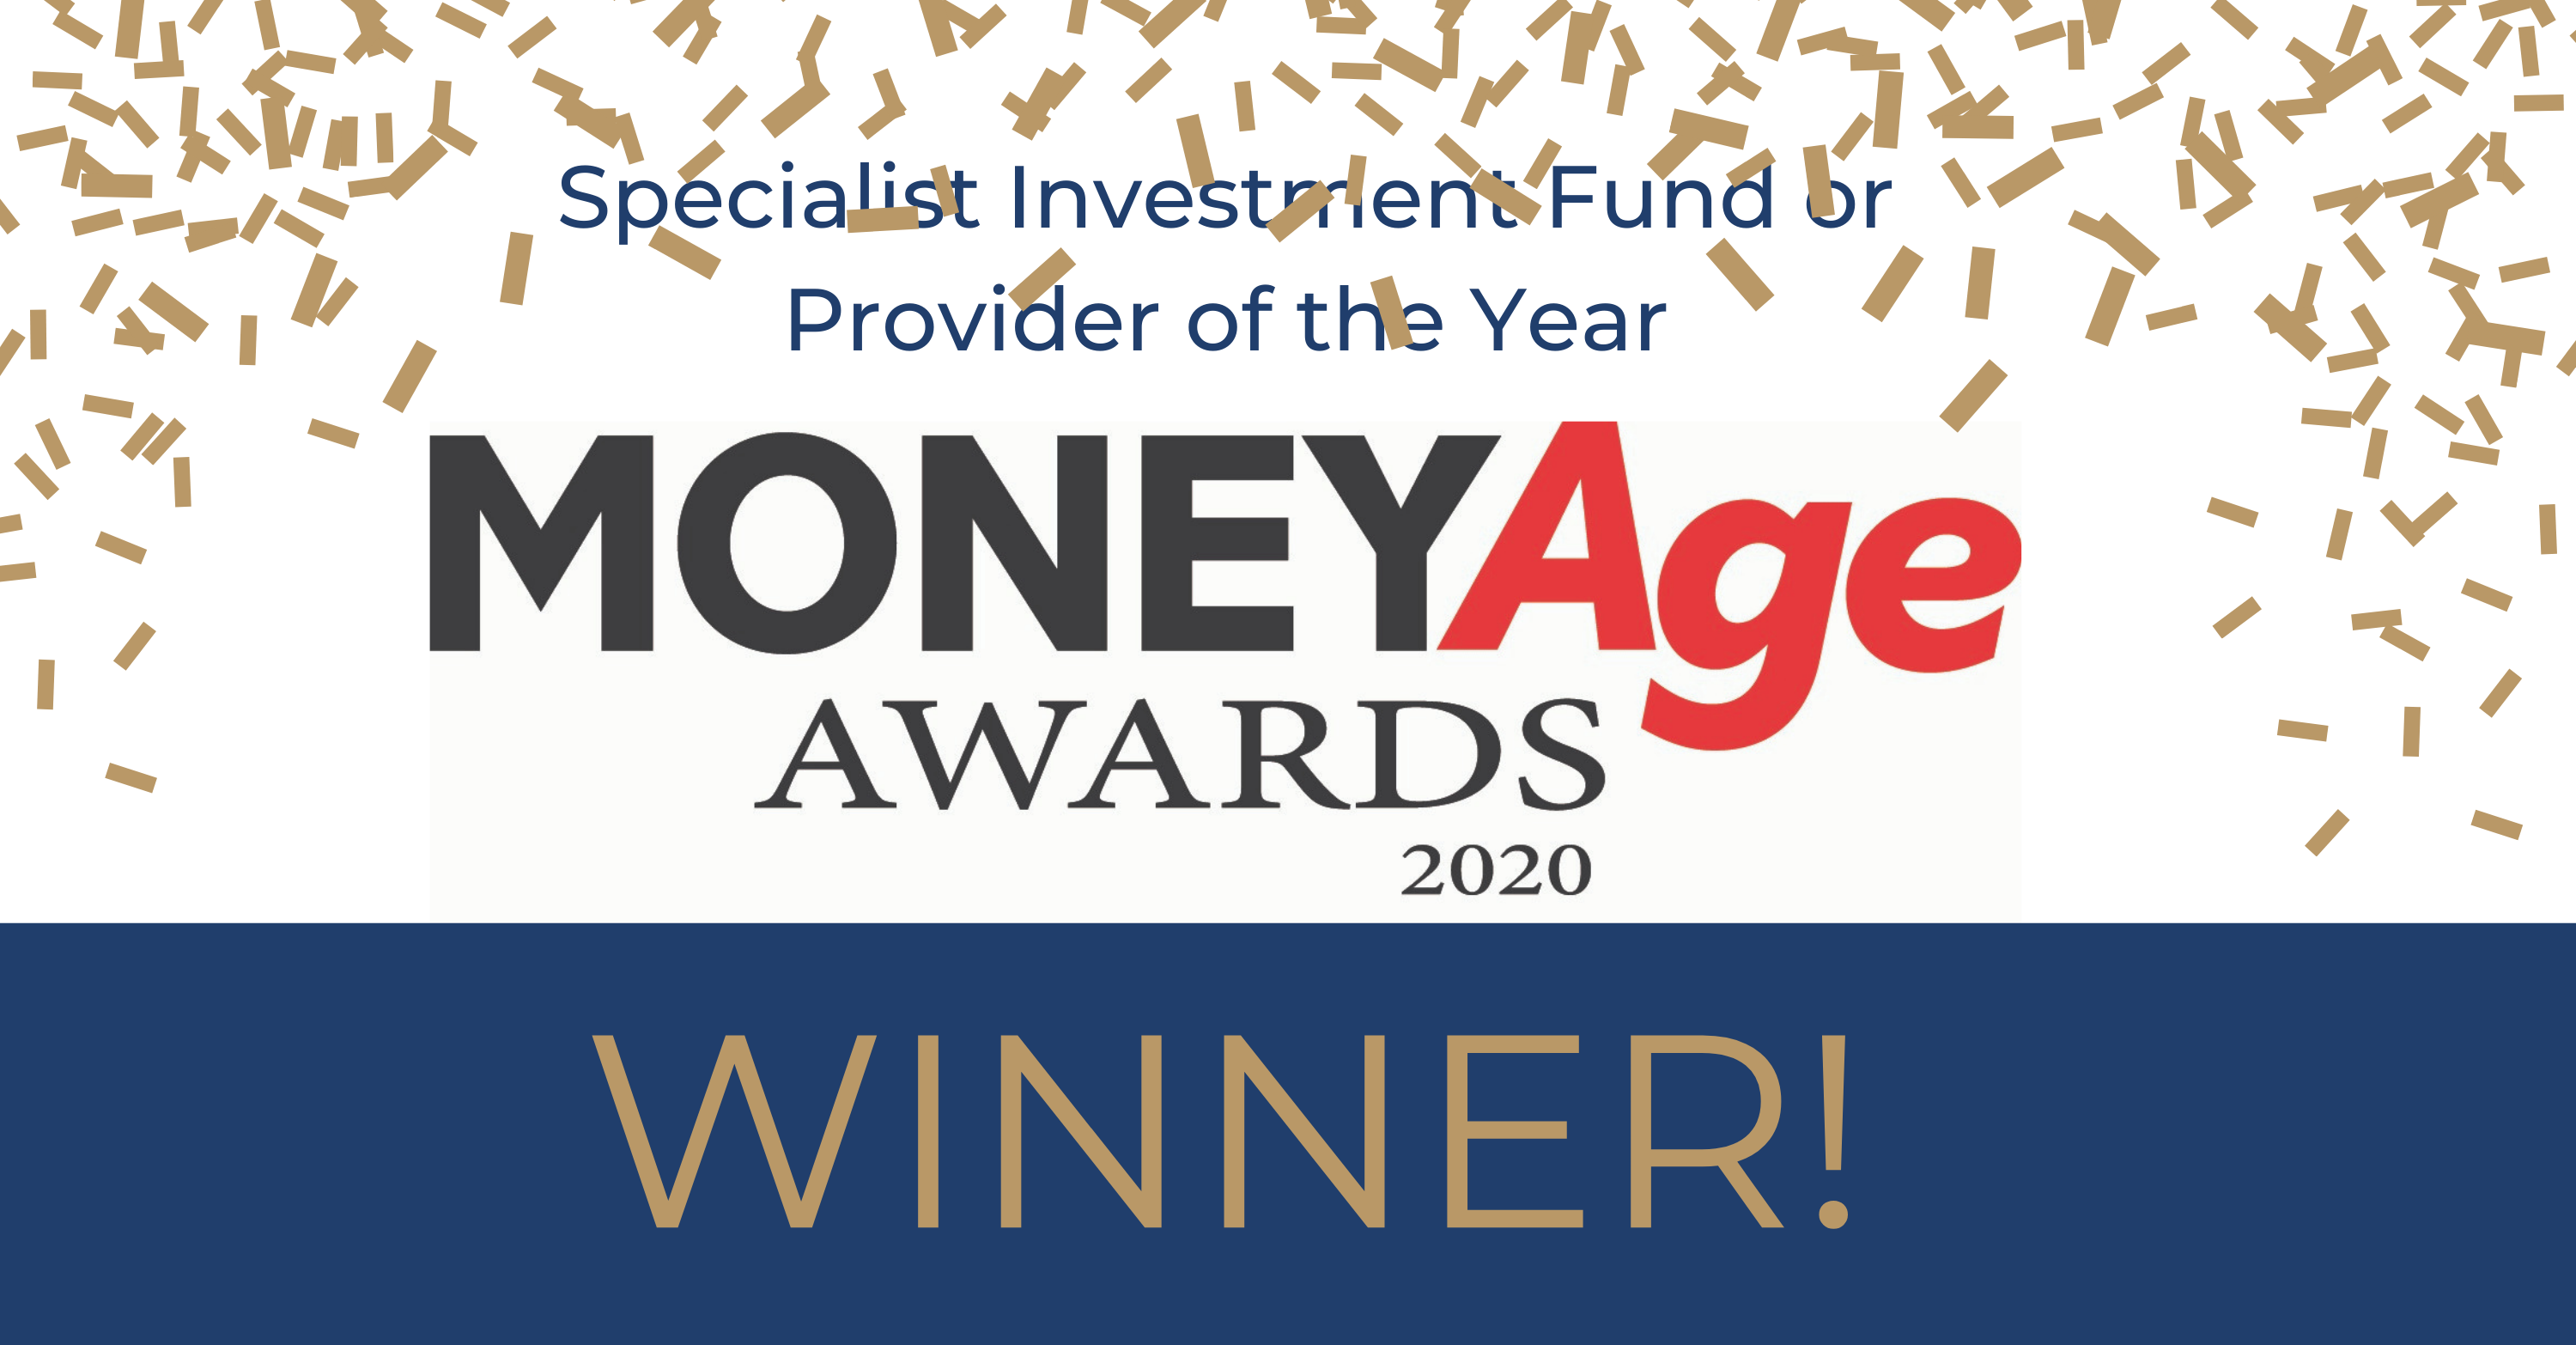 CapitalRise are crowned Specialist Investment Provider of the Year